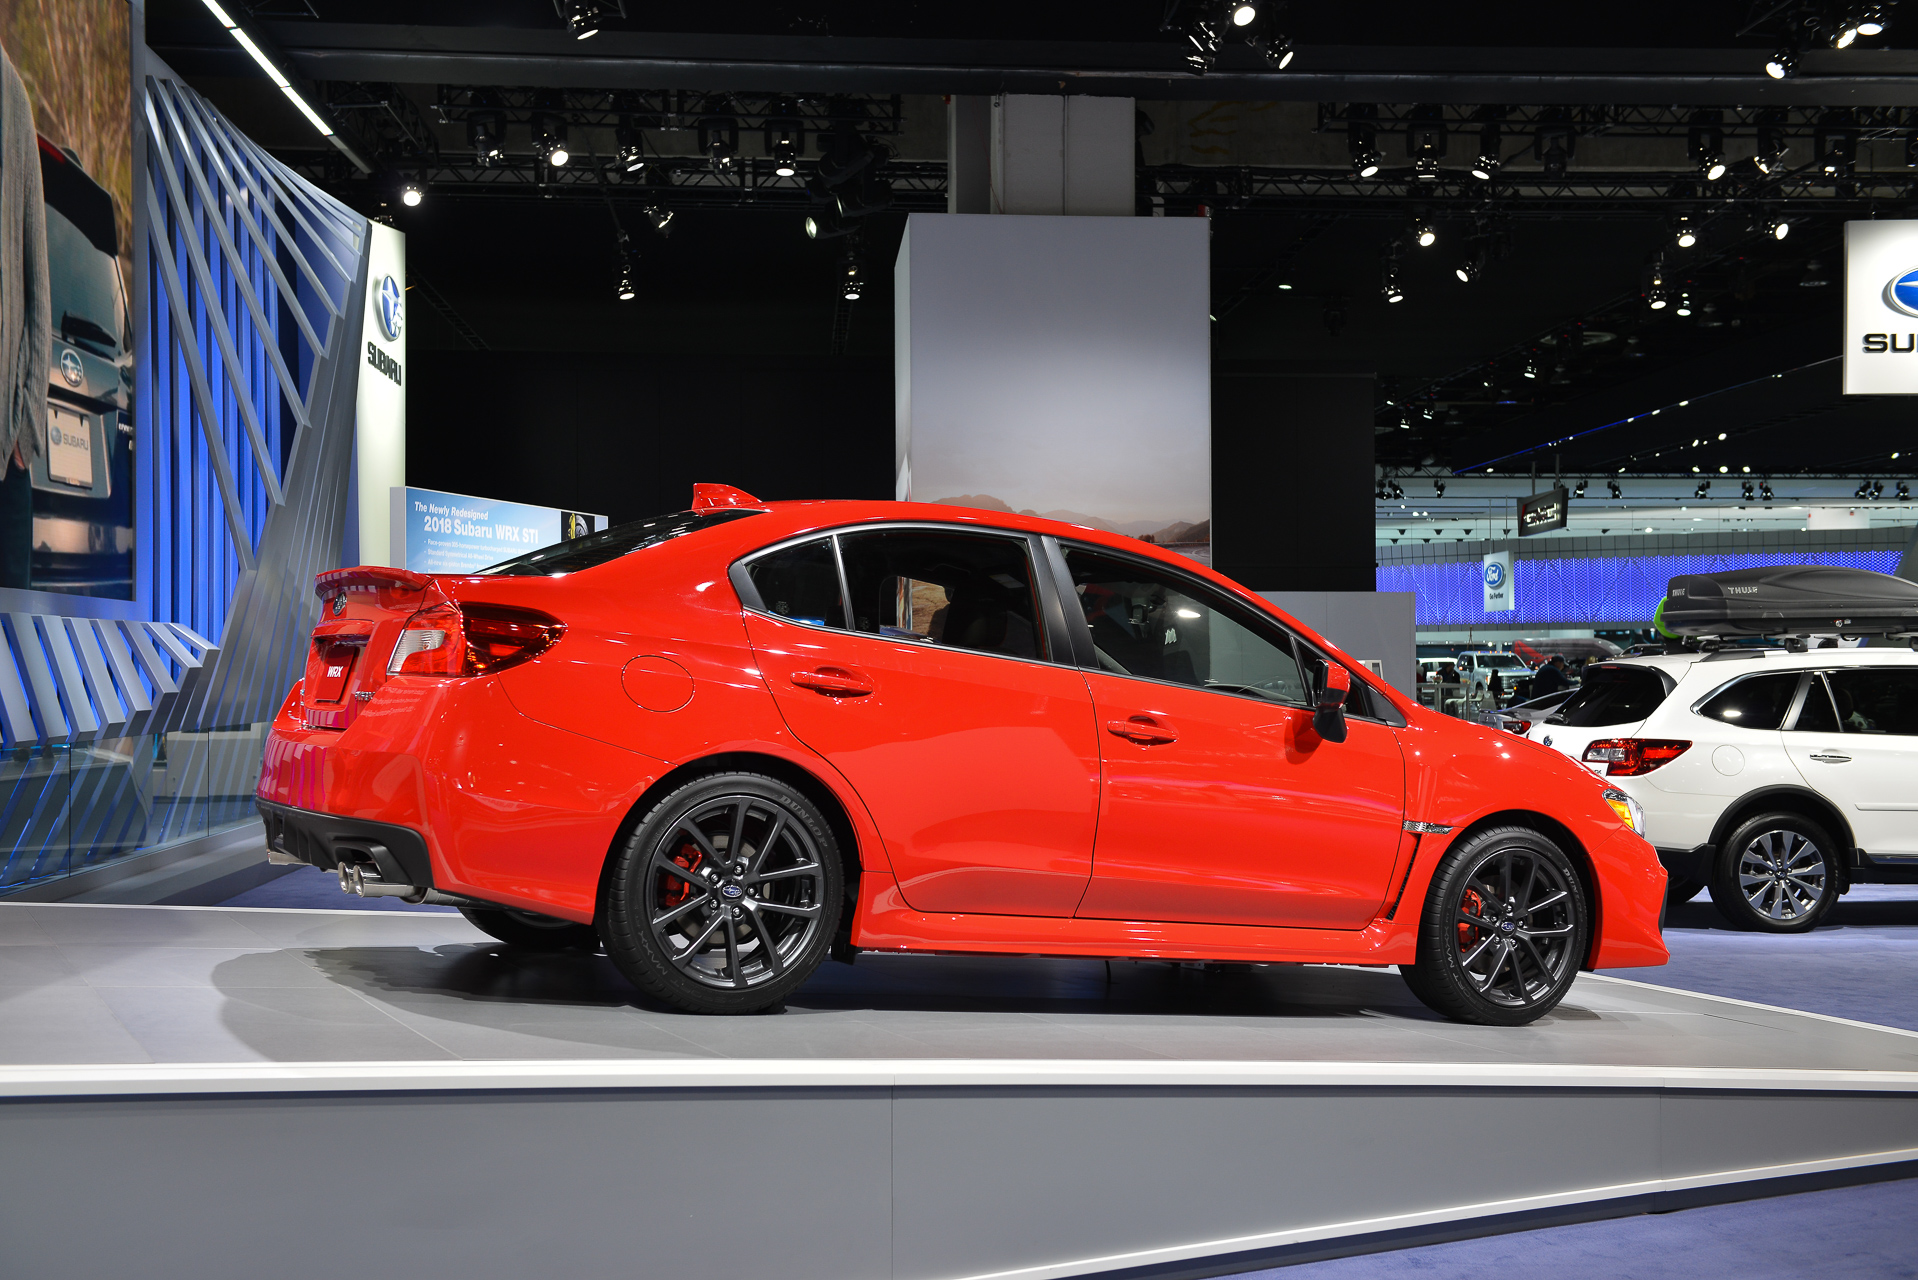 Subaru WRX priced from $27,855, WRX STI from $36,995 ...